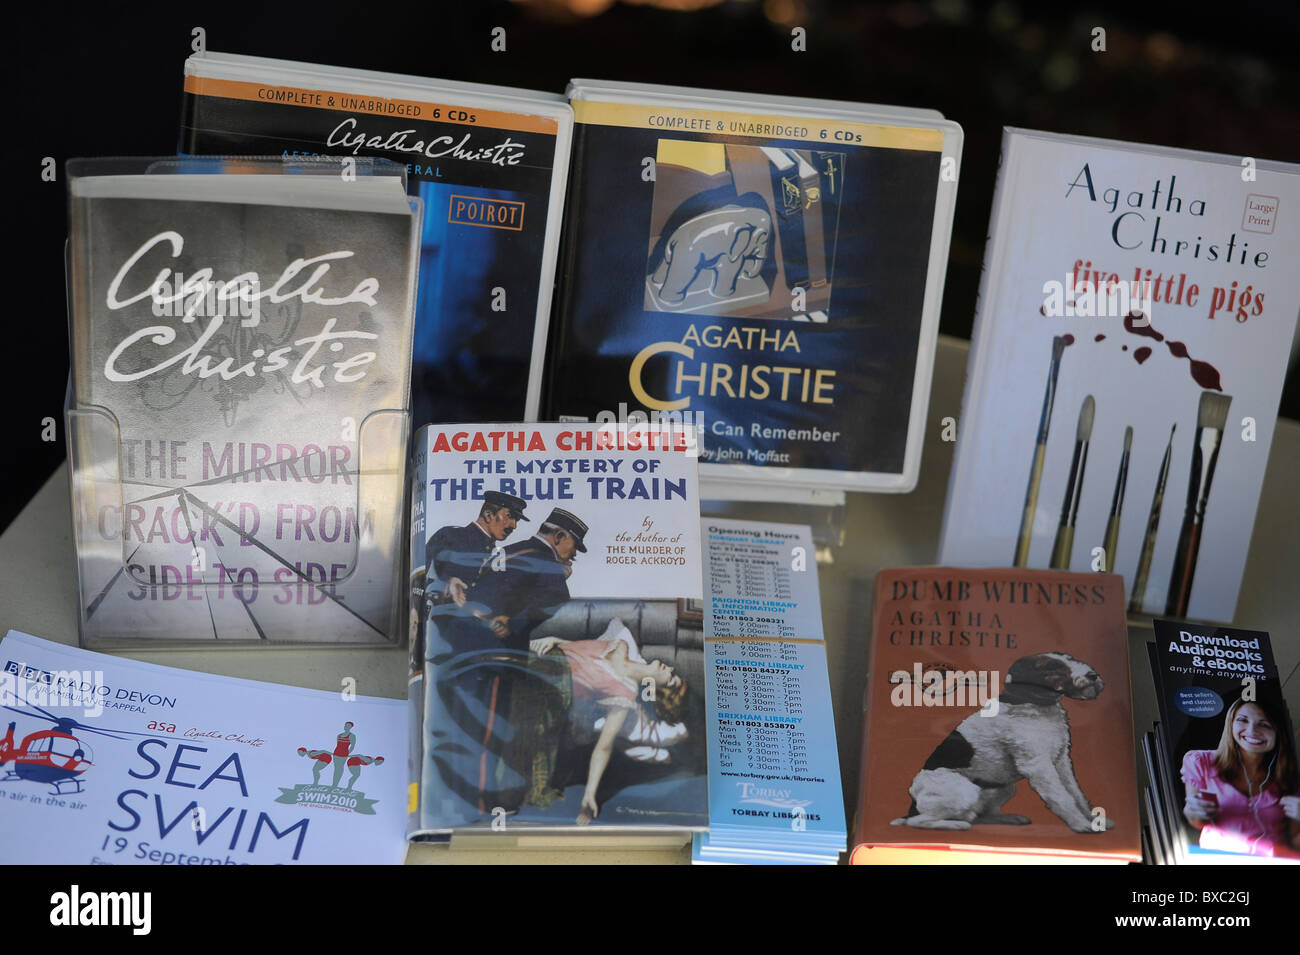 A collection of Agatha Christie books on a table at The Agatha Christie Festival, in Torquay, Devon. - Stock Image